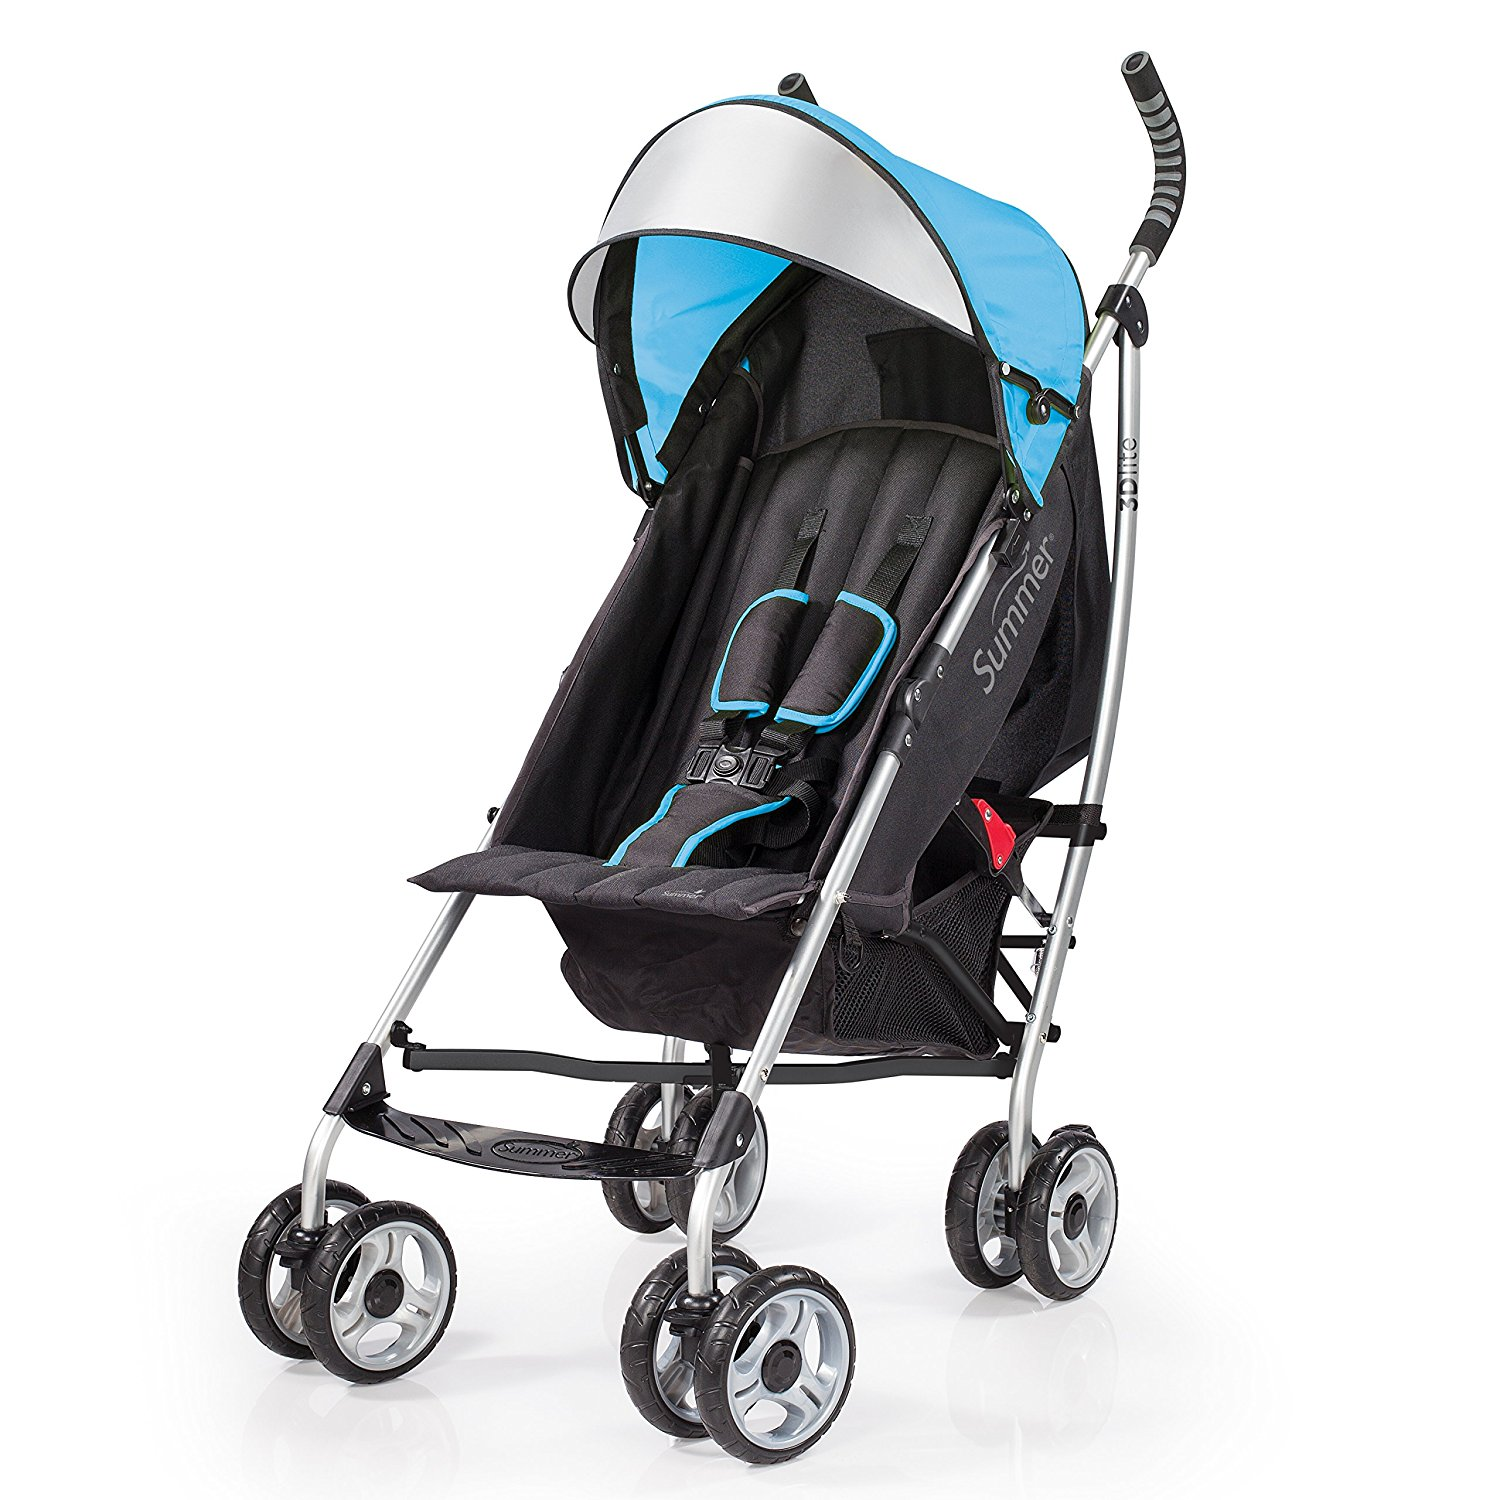 Best Travel Strollers of 2017